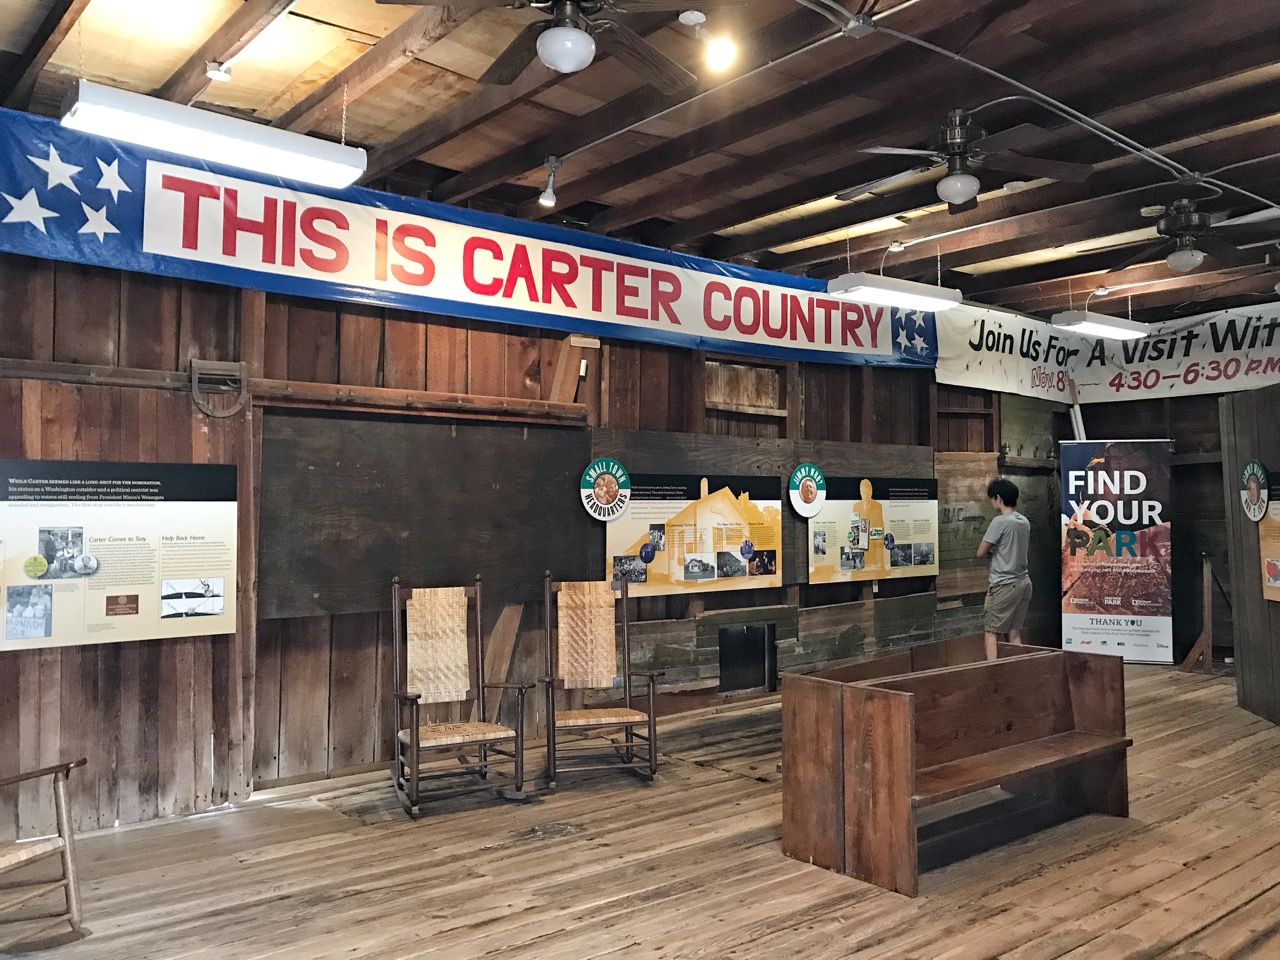 Inside the Plains Depot is a very informative exhibit on Jimmy Carter's 1976 presidential campaign